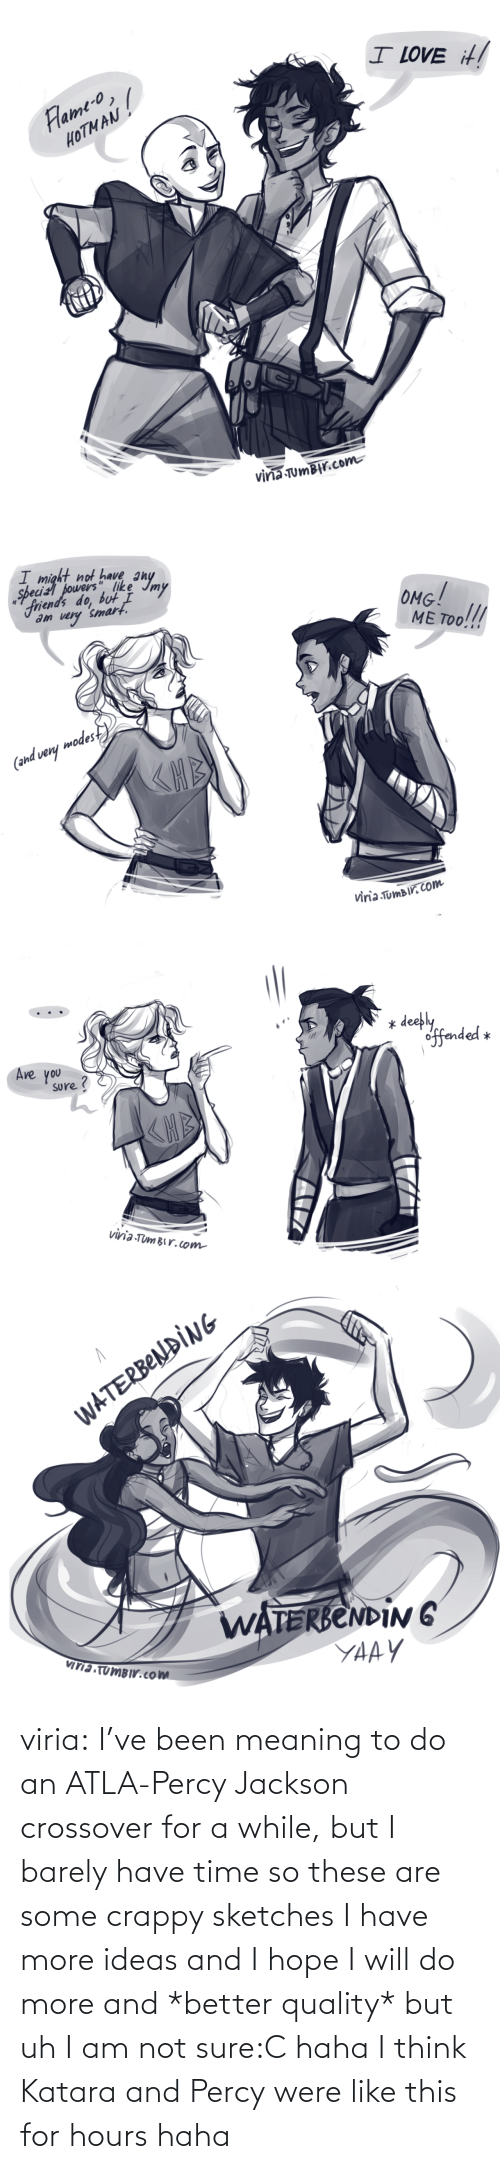 Not: viria:  I've been meaning to do an ATLA-Percy Jackson crossover for a while, but I barely have time so these are some crappy sketches I have more ideas and I hope I will do more and *better quality* but uh I am not sure:C haha I think Katara and Percy were like this for hours haha